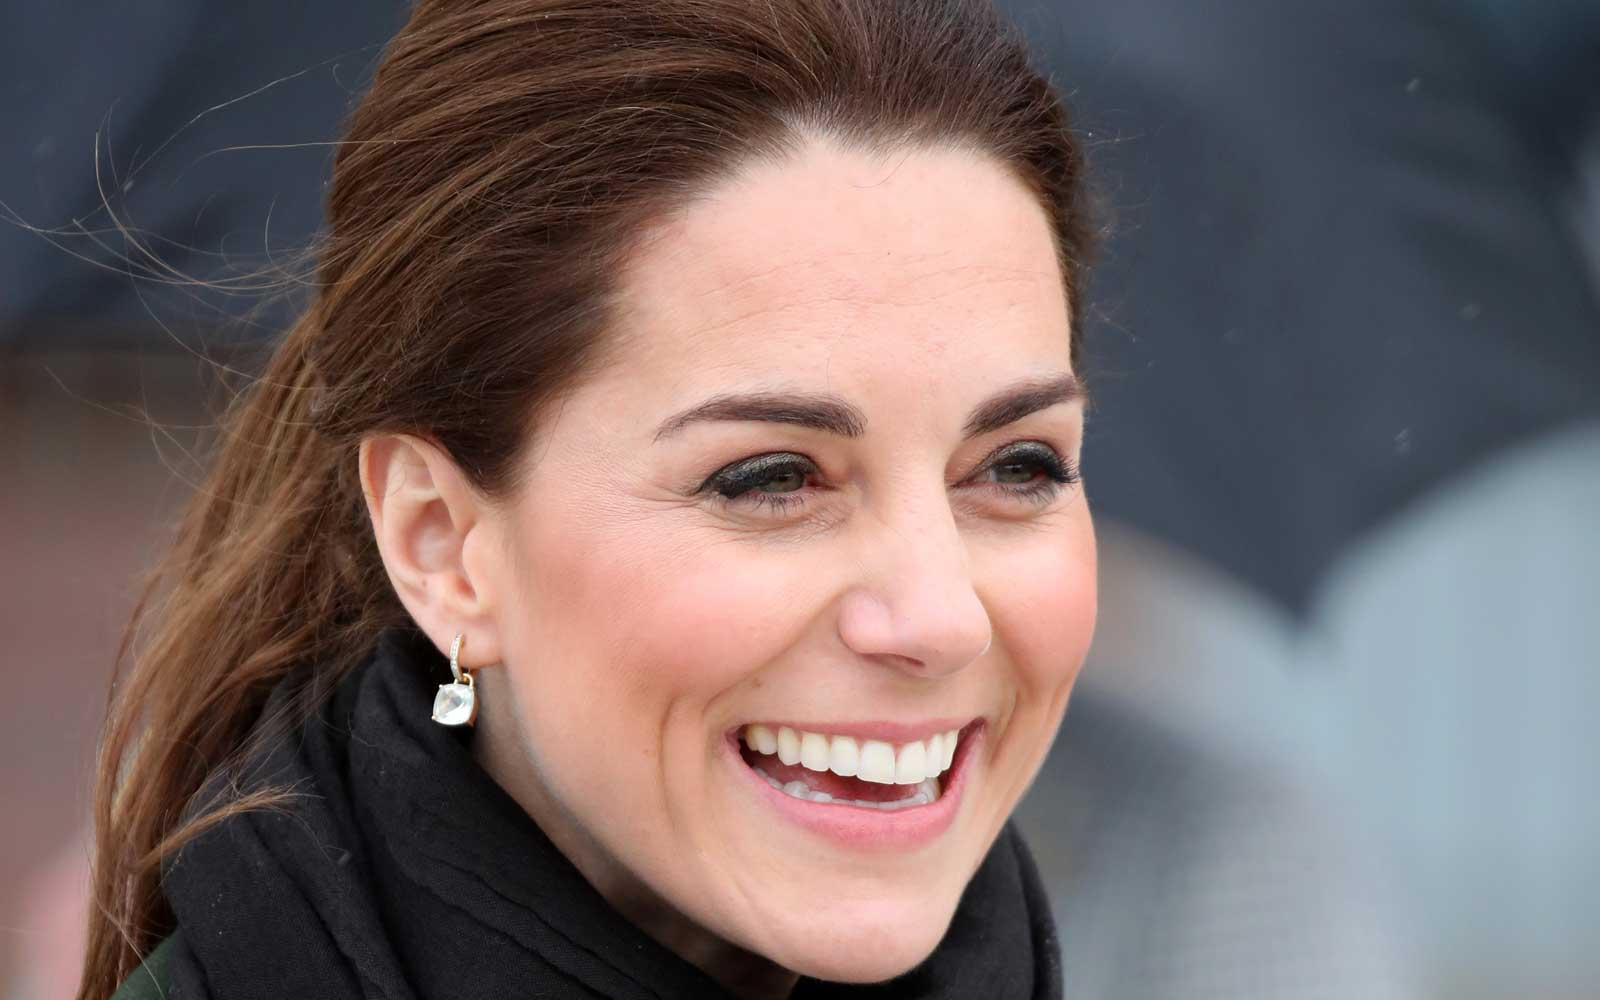 Kate Middleton Won't Be the New Royal Baby's Godmother, but Here's Who Might Be